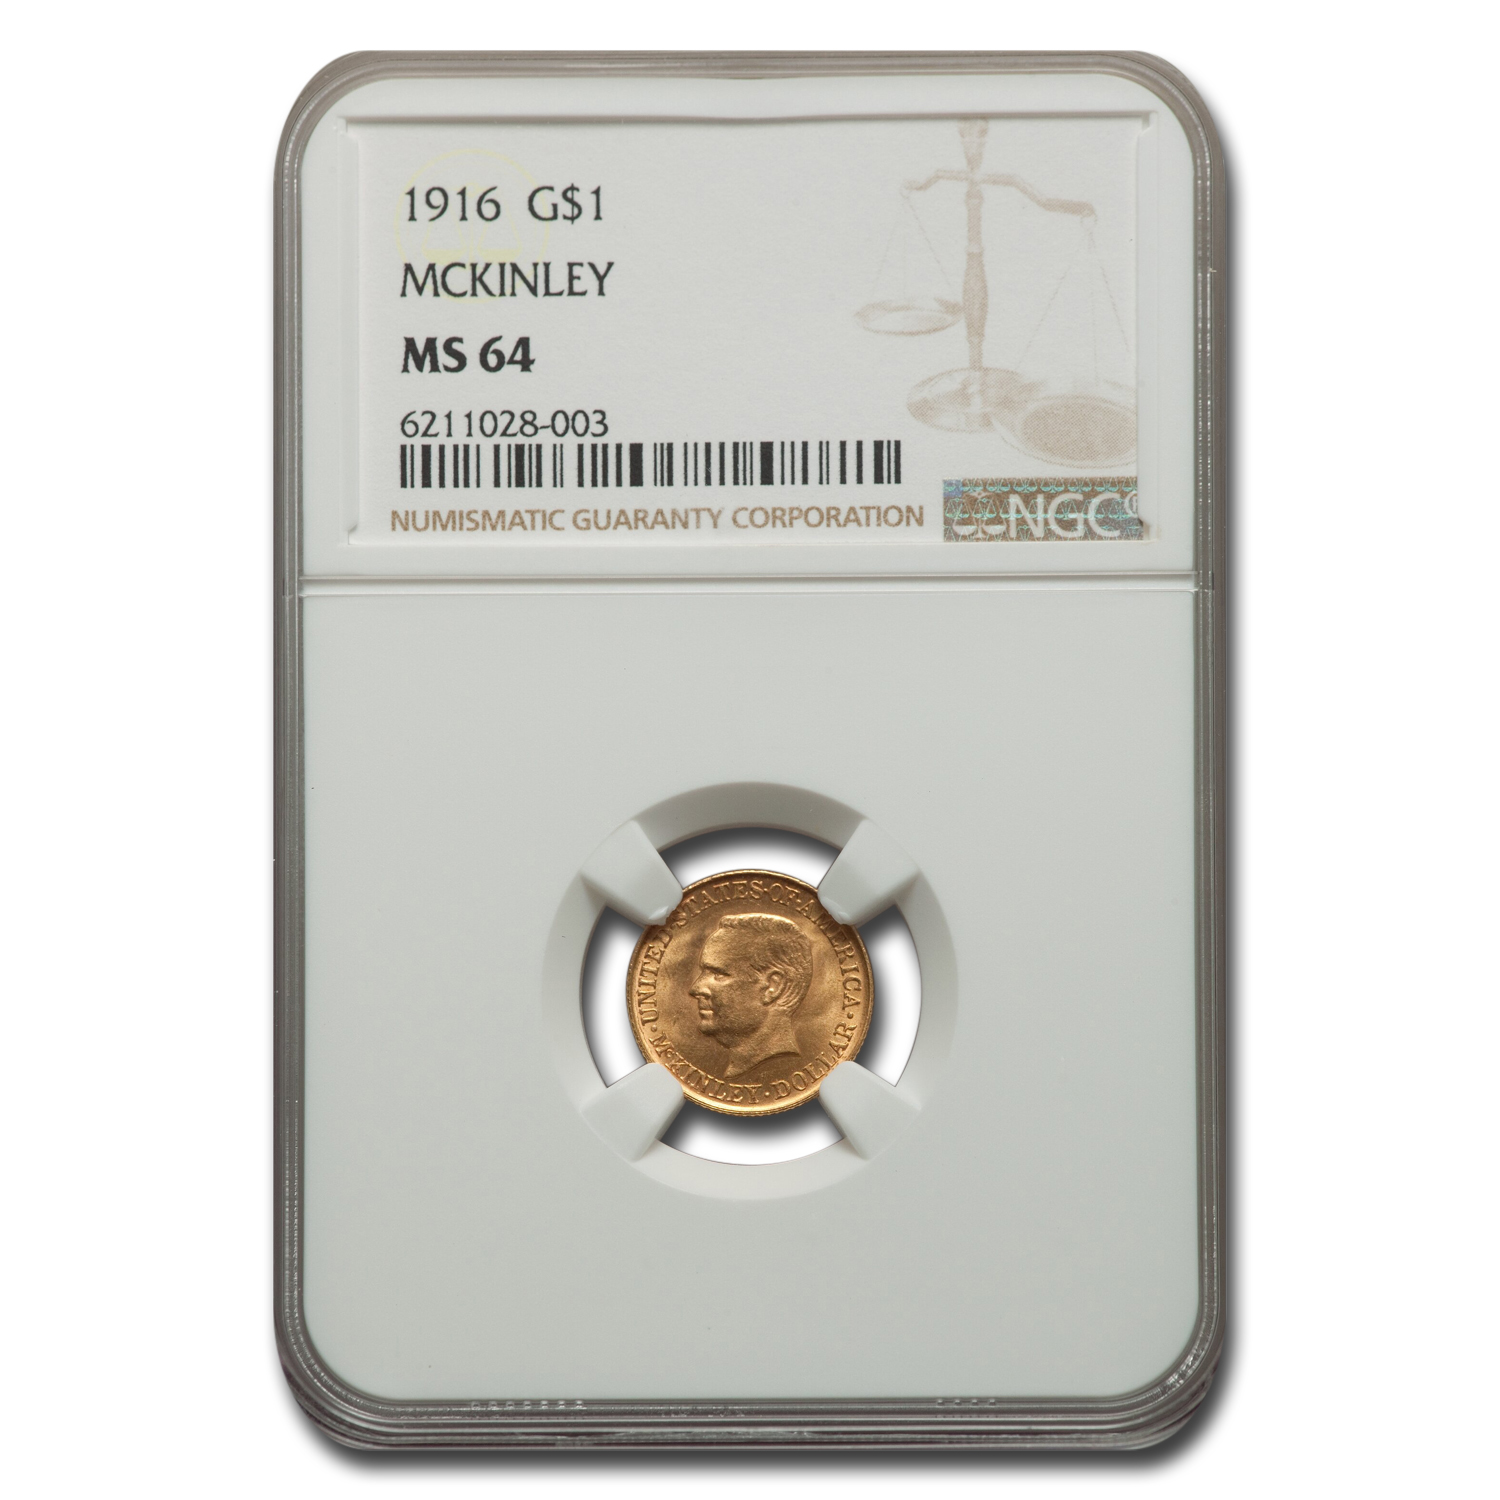 1916 $1.00 Gold McKinley MS-64 NGC